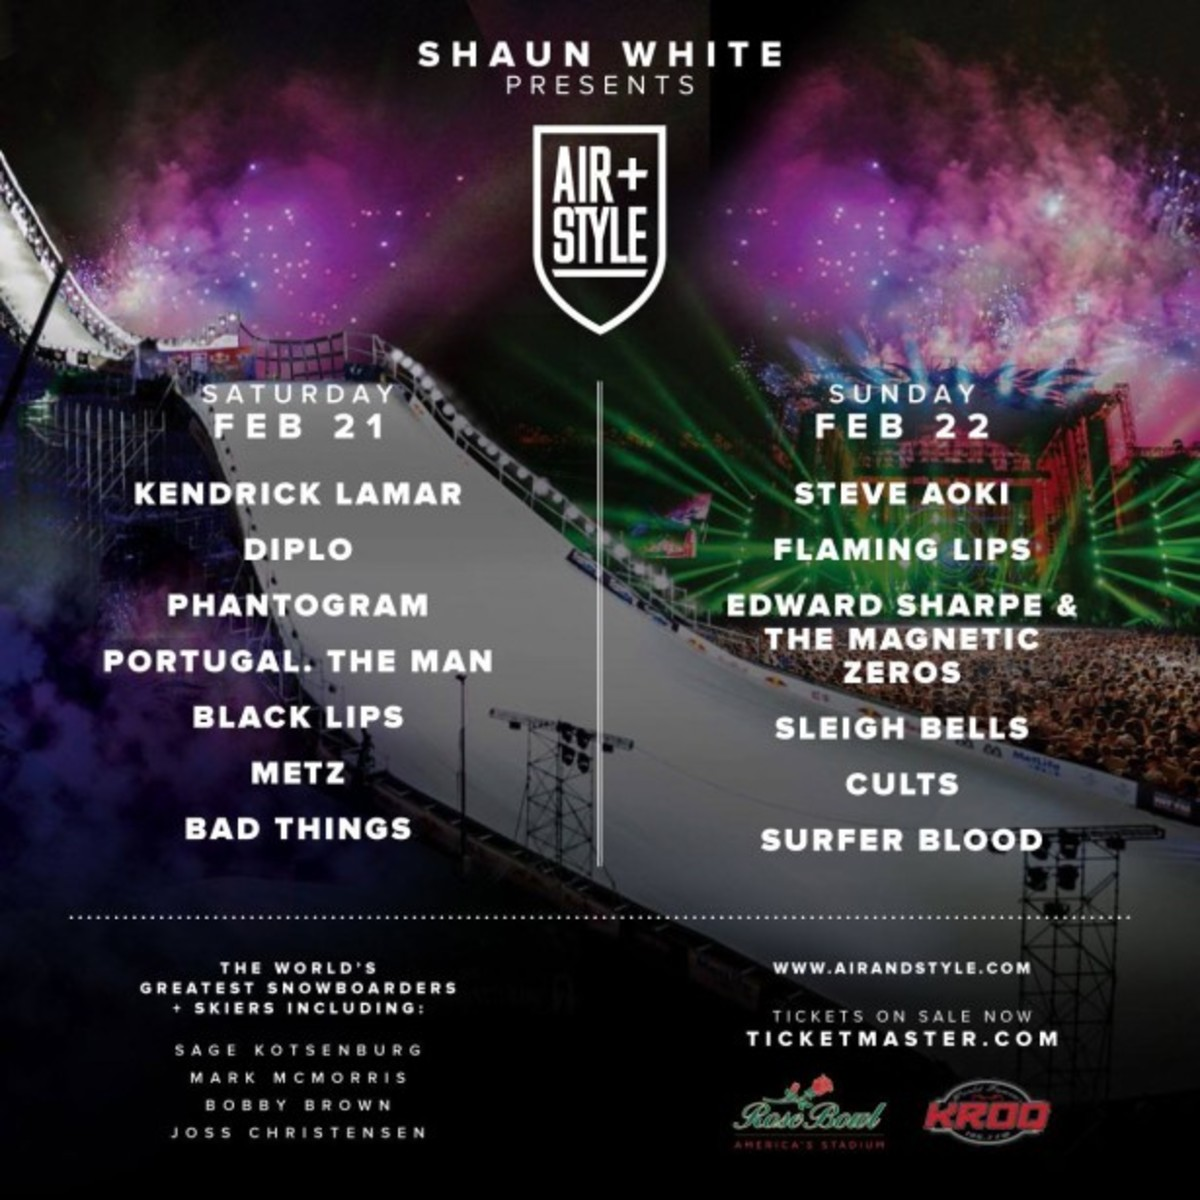 Win Tickets To Air + Style With Diplo, Steve Aoki